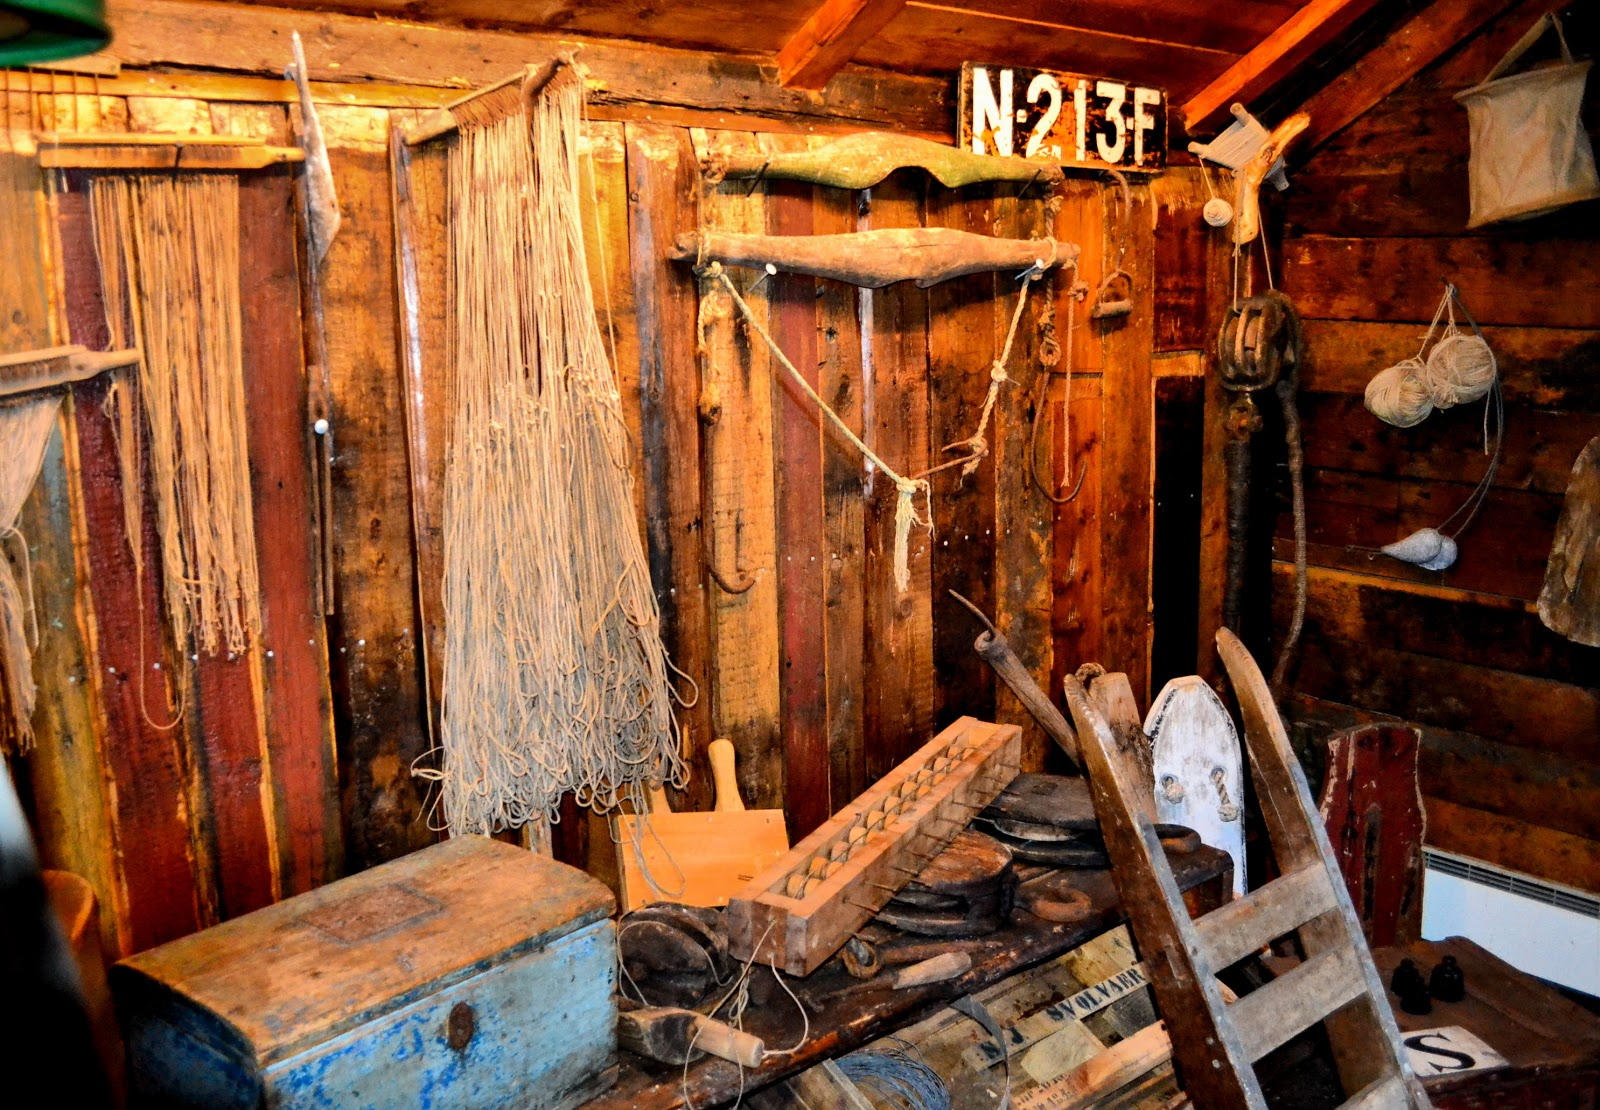 The front room was used to store fishing equipment including nets, salting barrels, lines, tools and the day's catch.